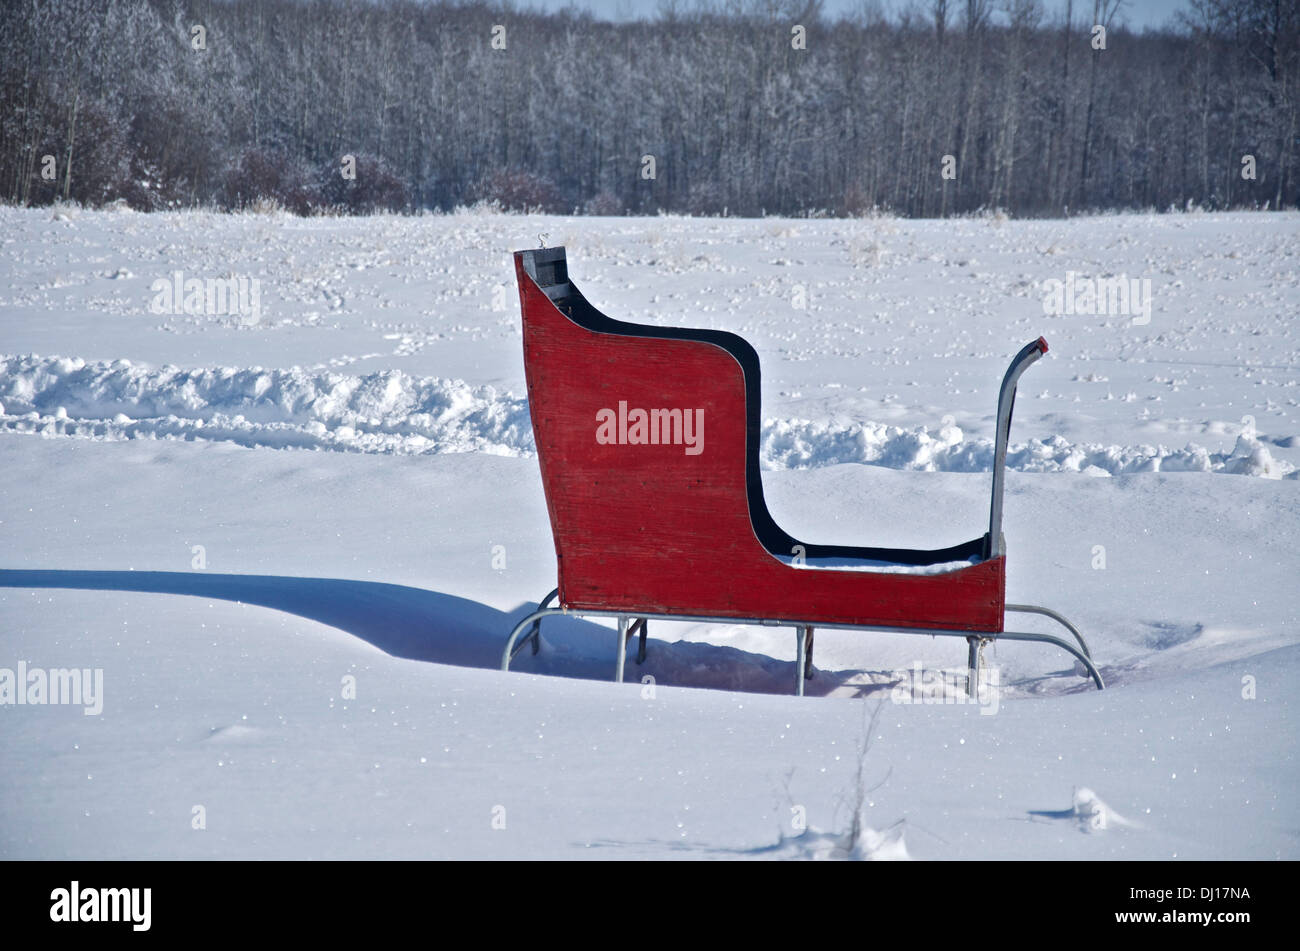 A rustic wooden red sleigh brightens up a field of freshly fallen snow on a sunny winter day. - Stock Image